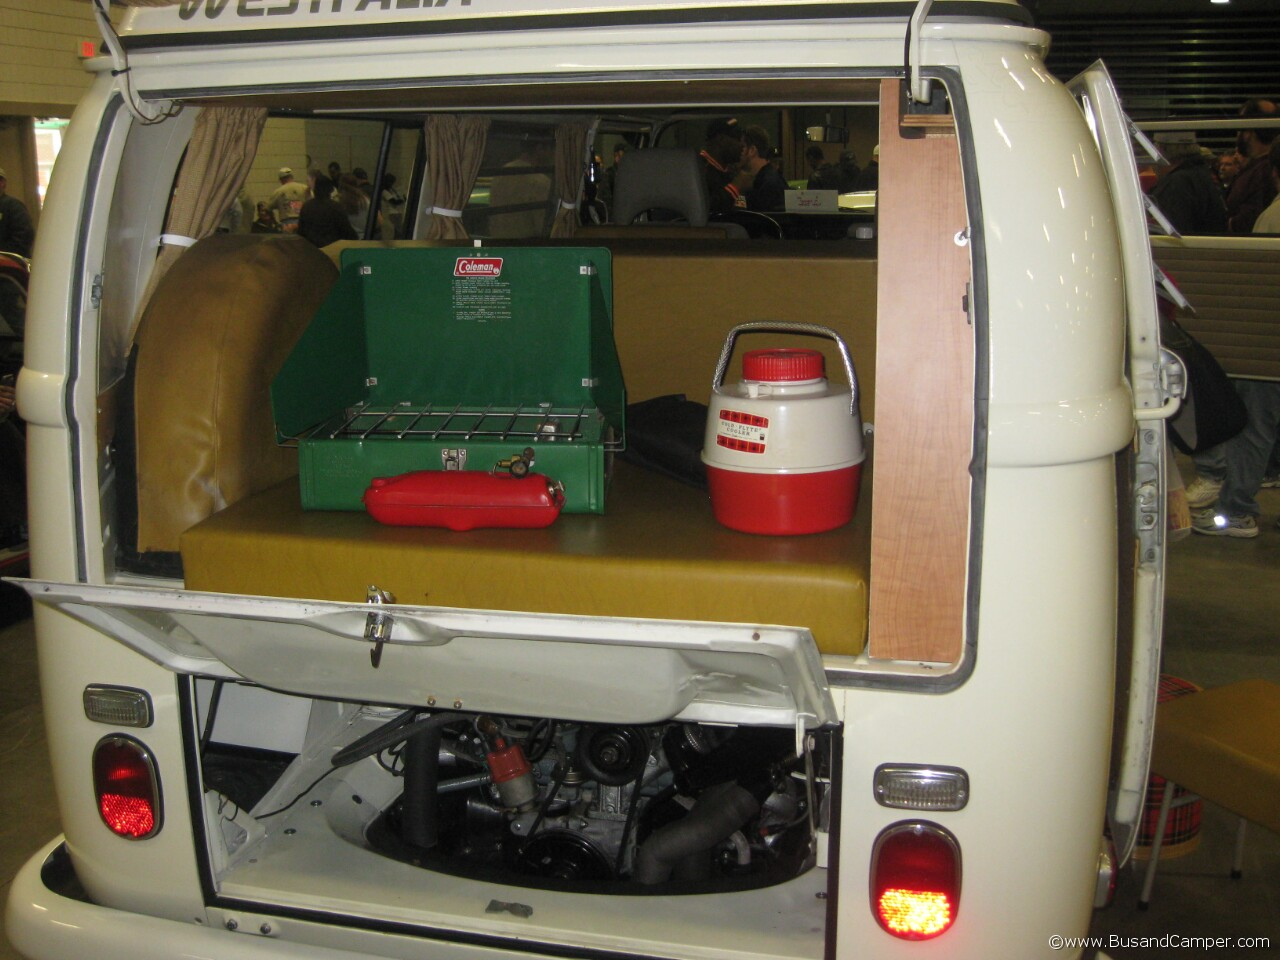 Westfalia earlybay rear hatch